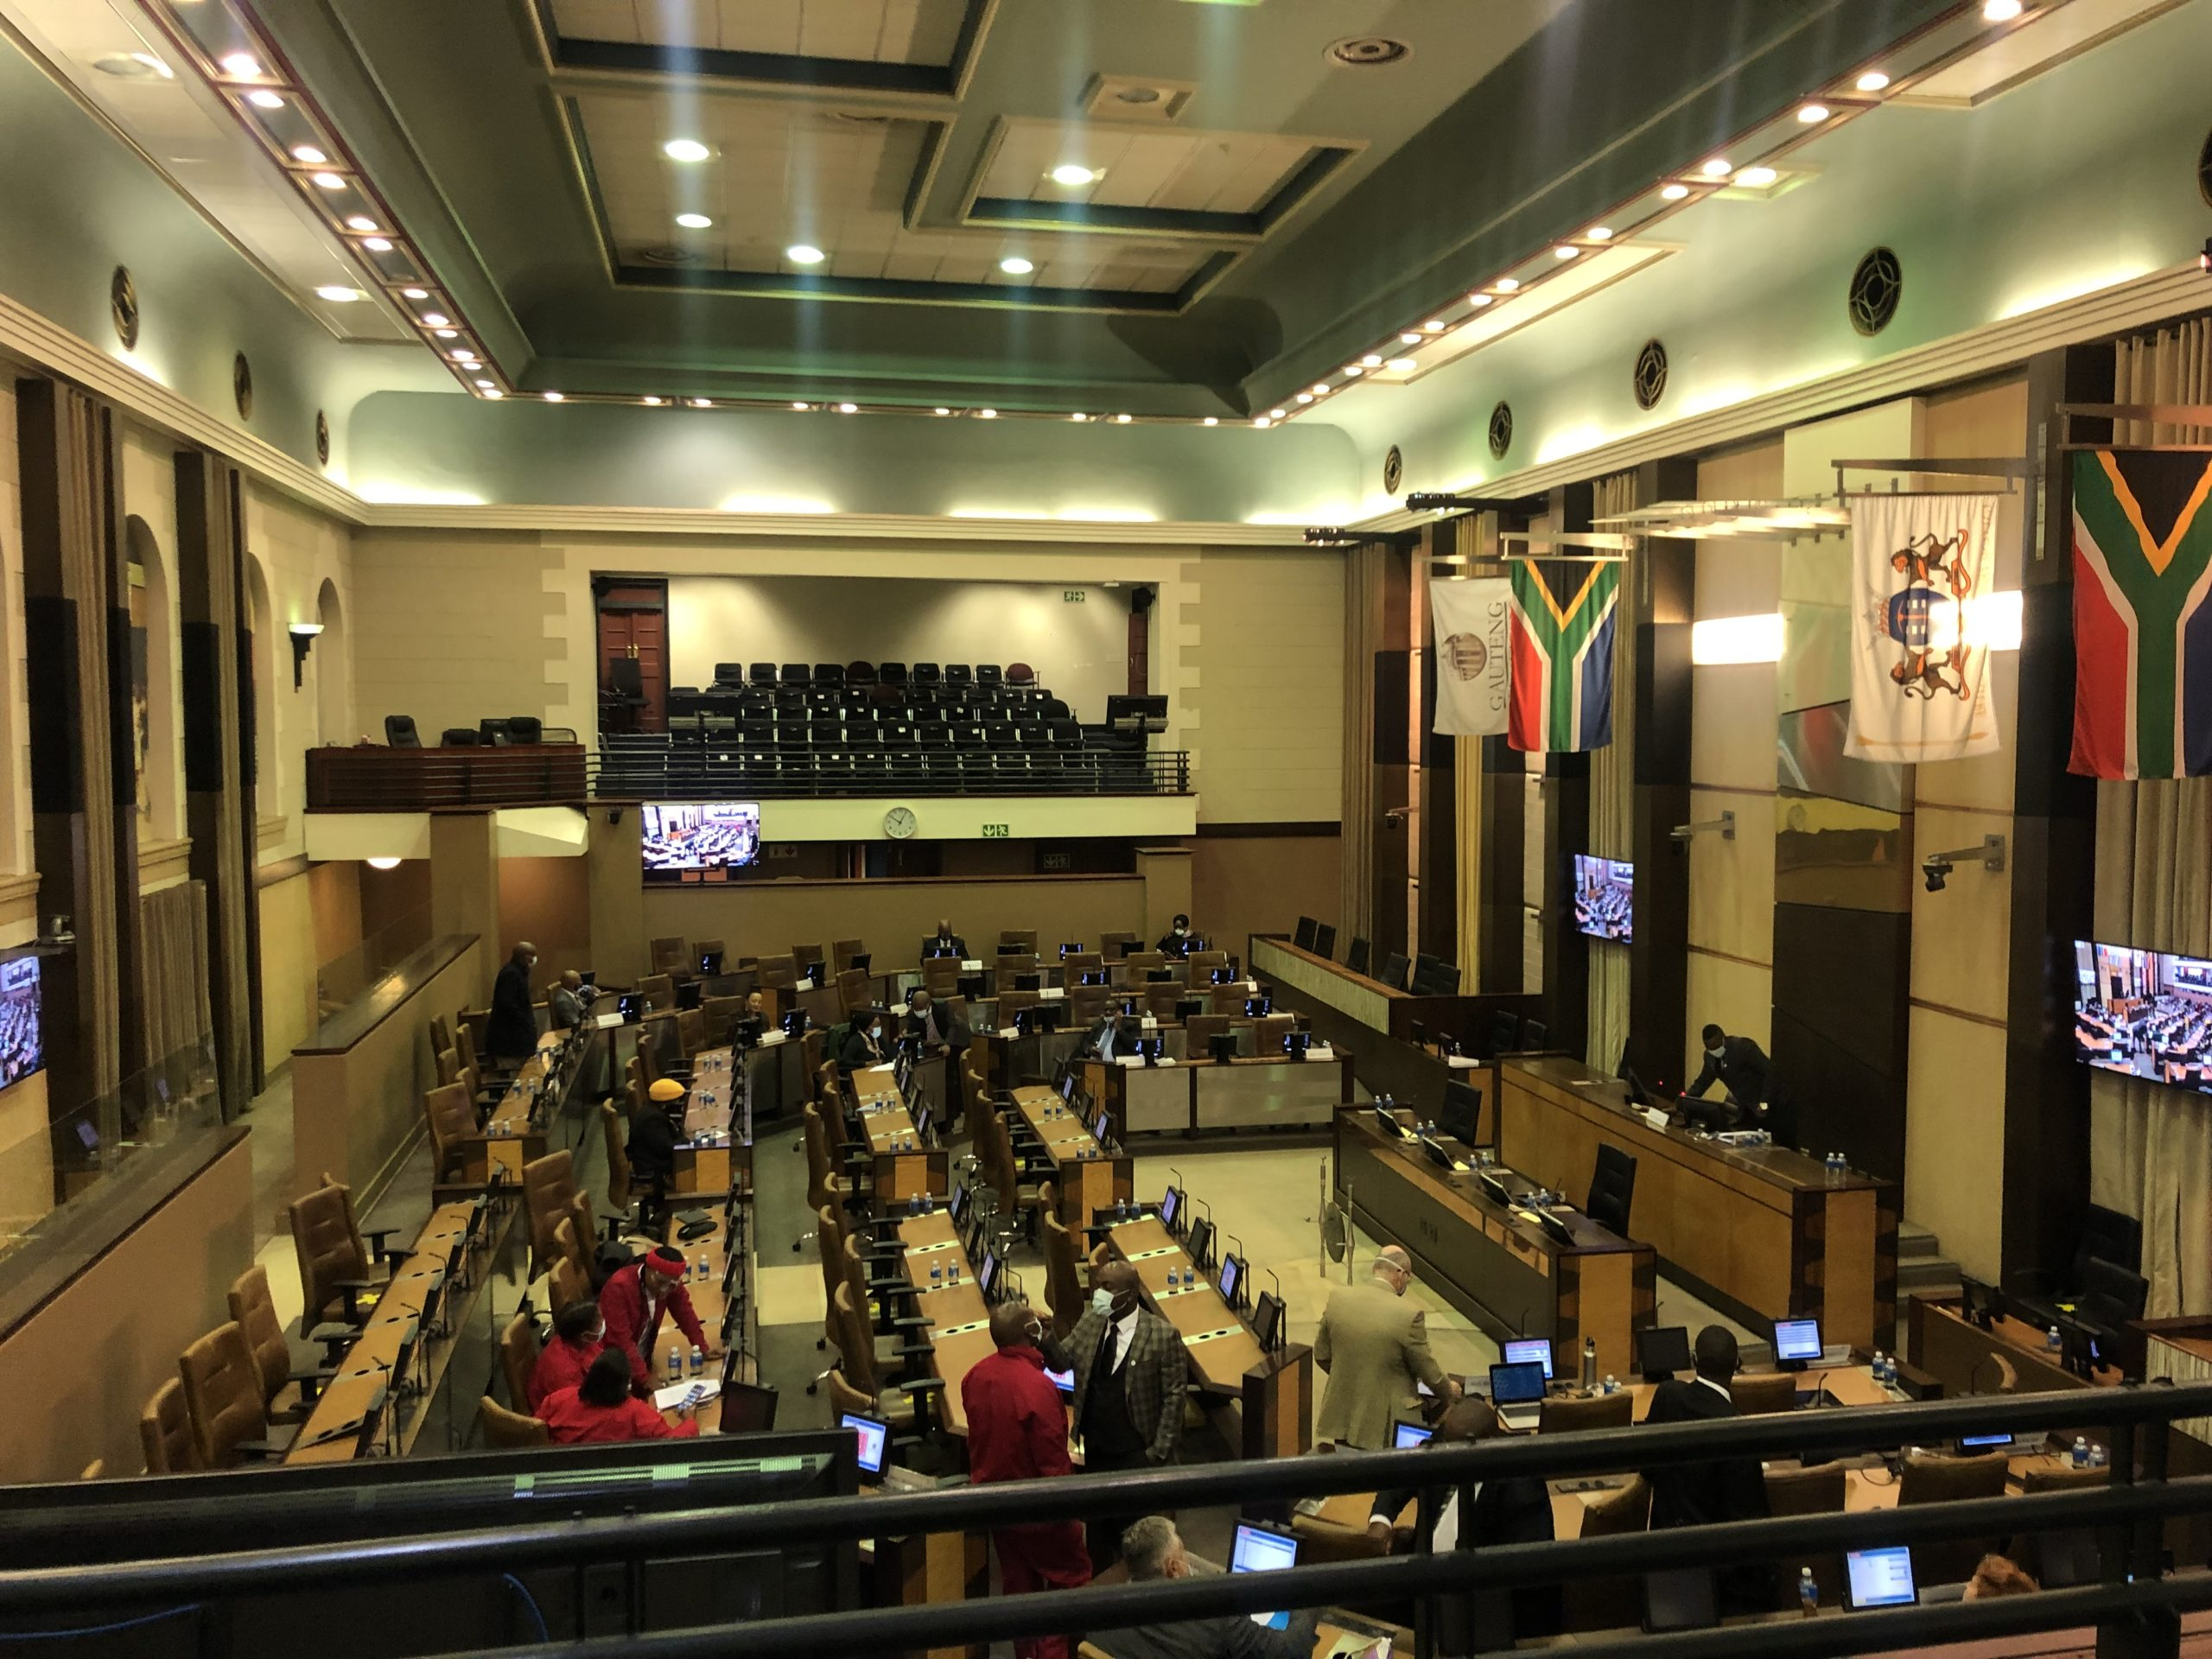 Gauteng 2021/22 budget is a missed opportunity but the priority is getting through this Covid Crisis